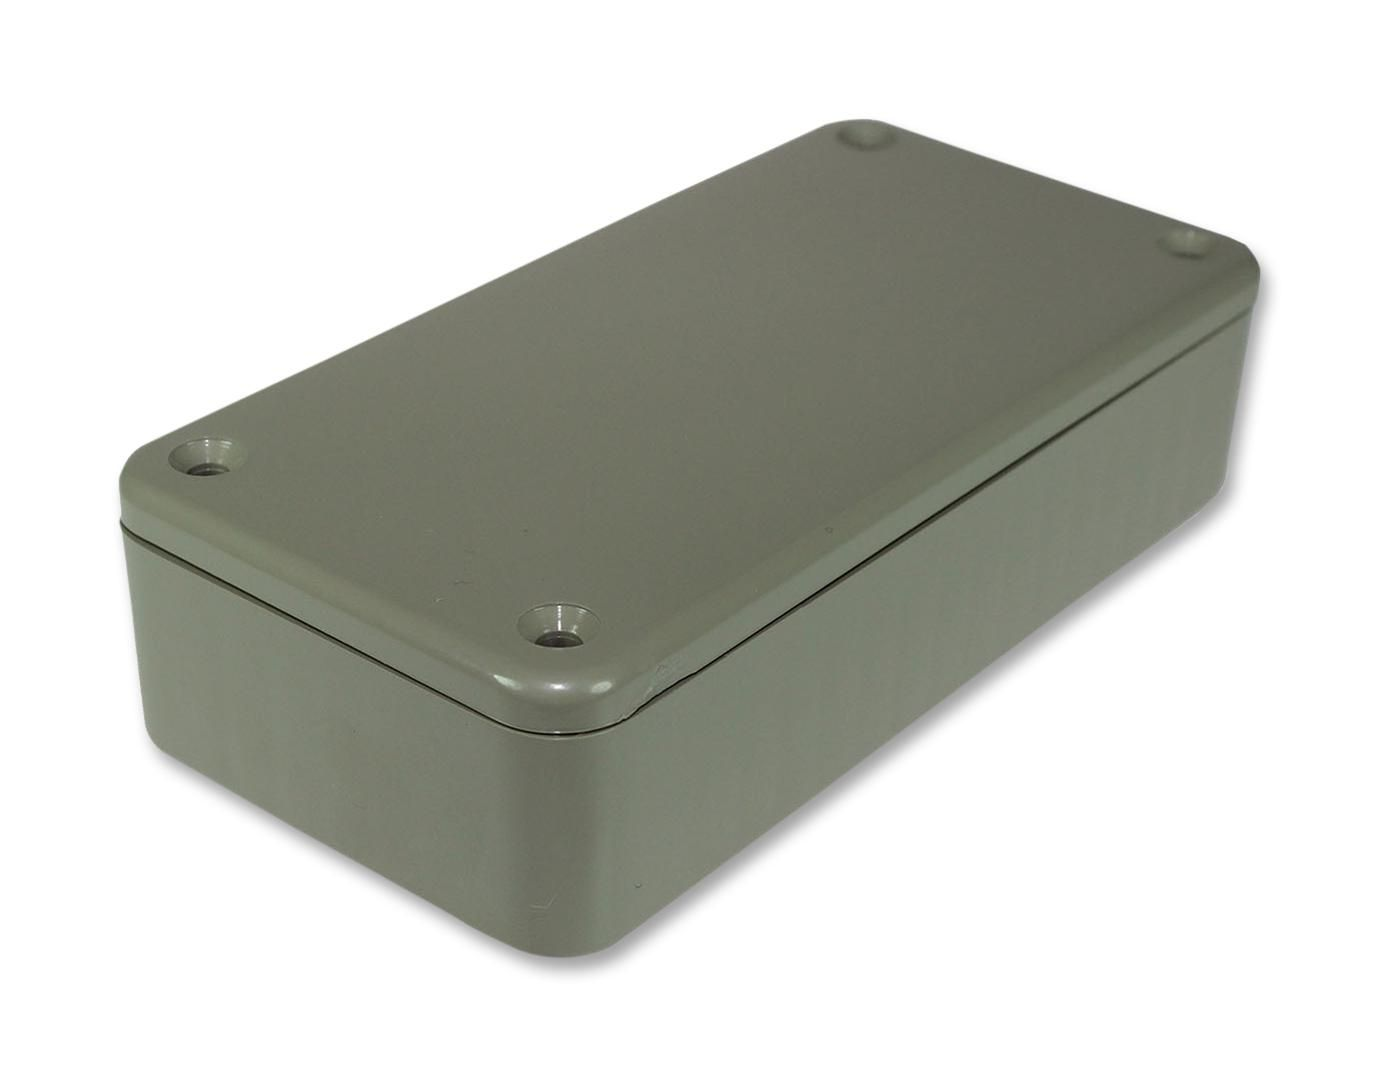 CAMDENBOSS BIM2002/12-GY/GY  Abs Case Grey 100X50X25Mm